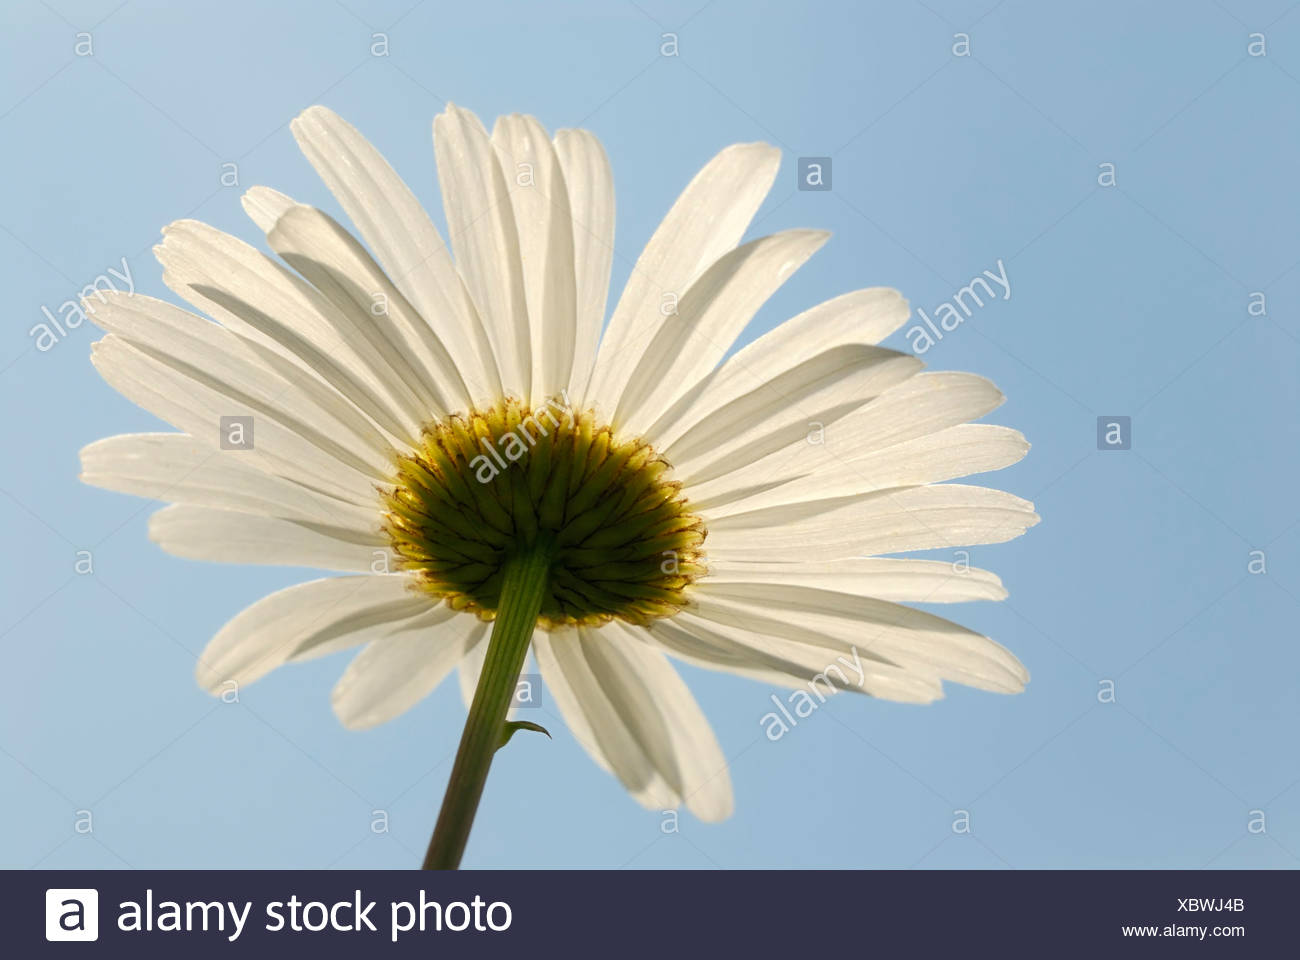 Oxeye Daisy or Marguerite (Leucanthemum vulgare), flower seen from below with backlighting Stock Photo